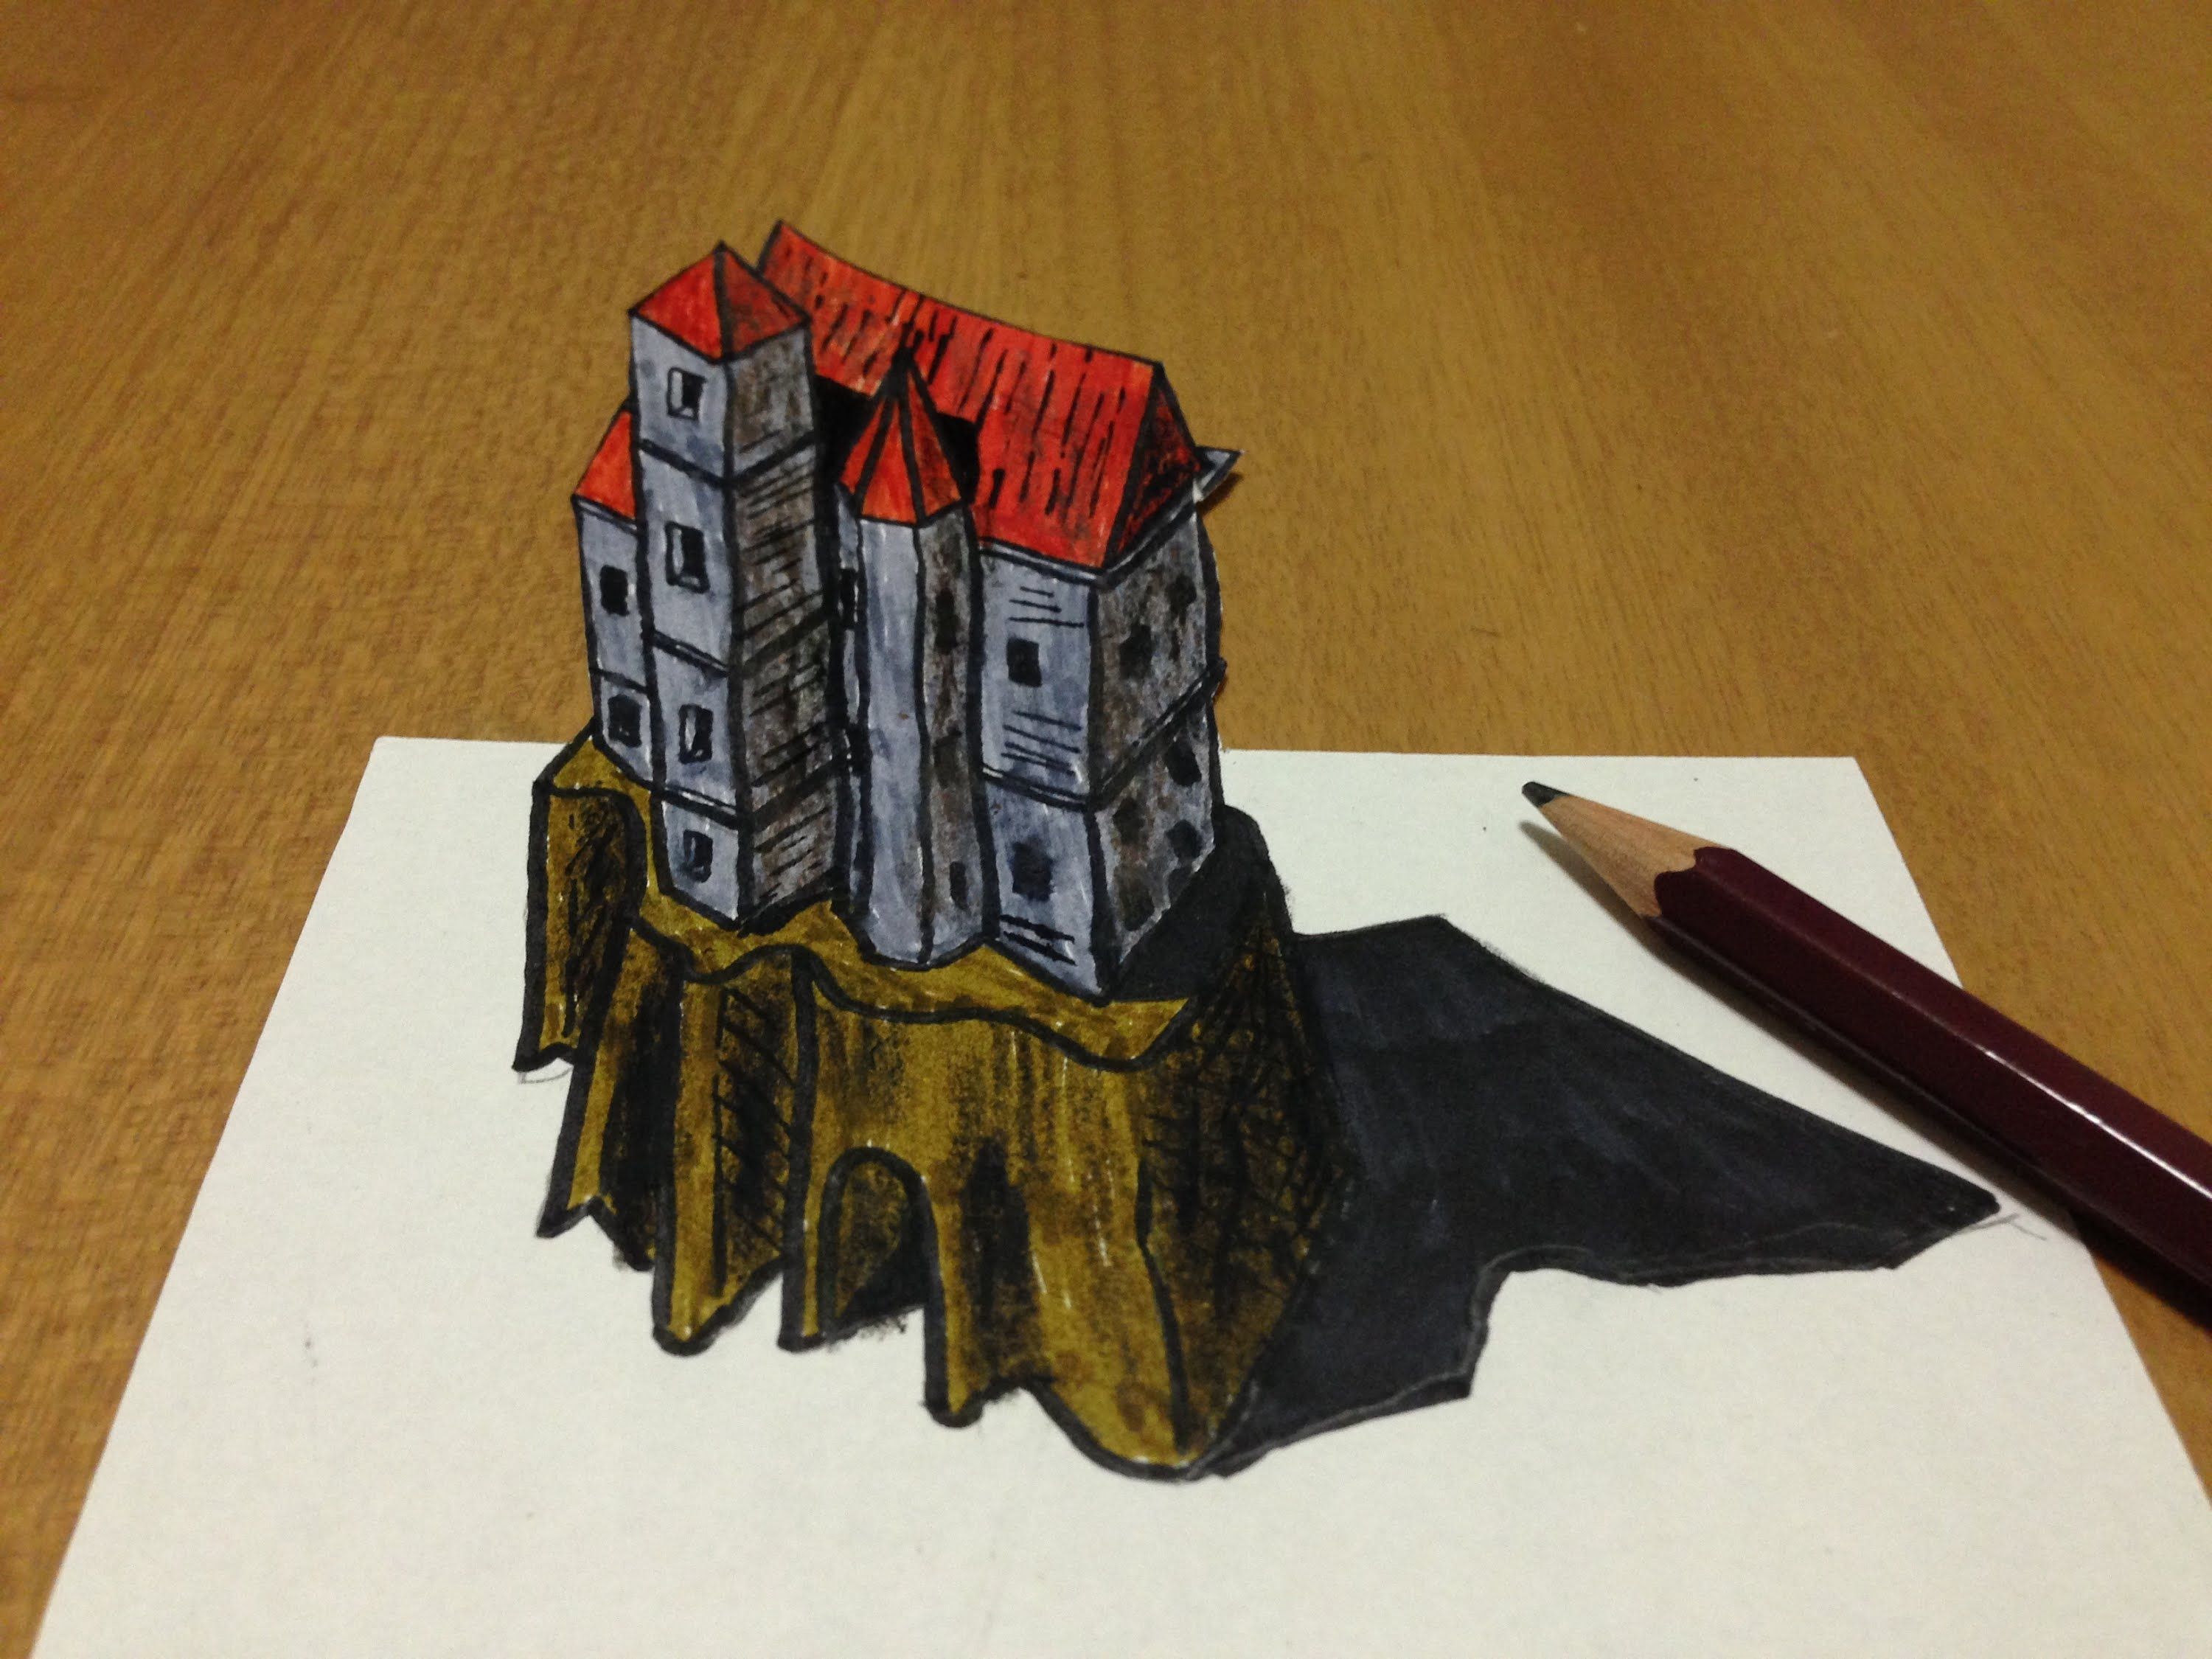 image about Anamorphic Illusions Printable referred to as 3d Castle Drawing at  Free of charge for specific employ the service of